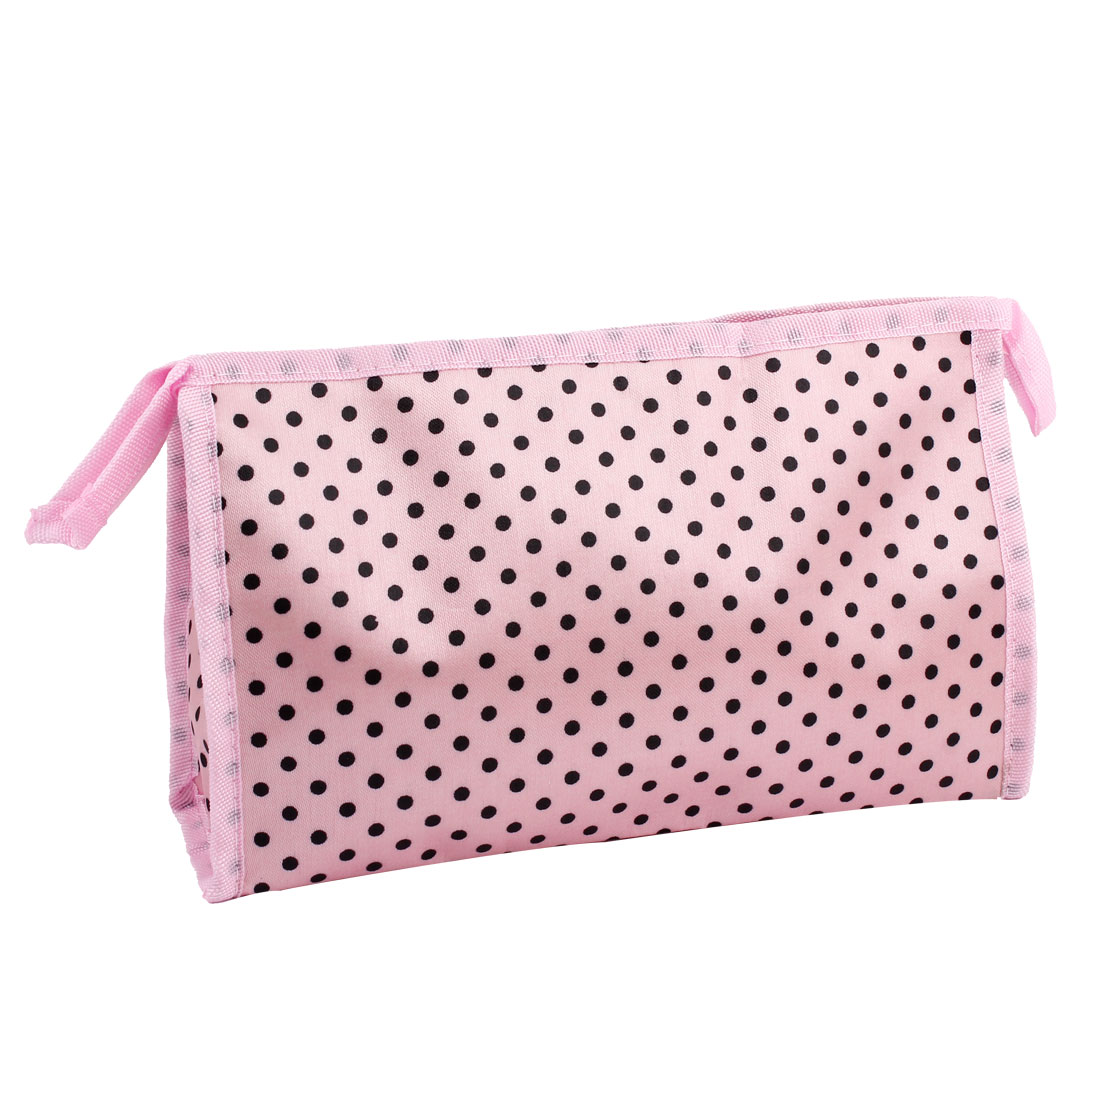 Pink Dotted Print Zip Closure Rectangular Makeup Pouch Cosmetic Bag for Women